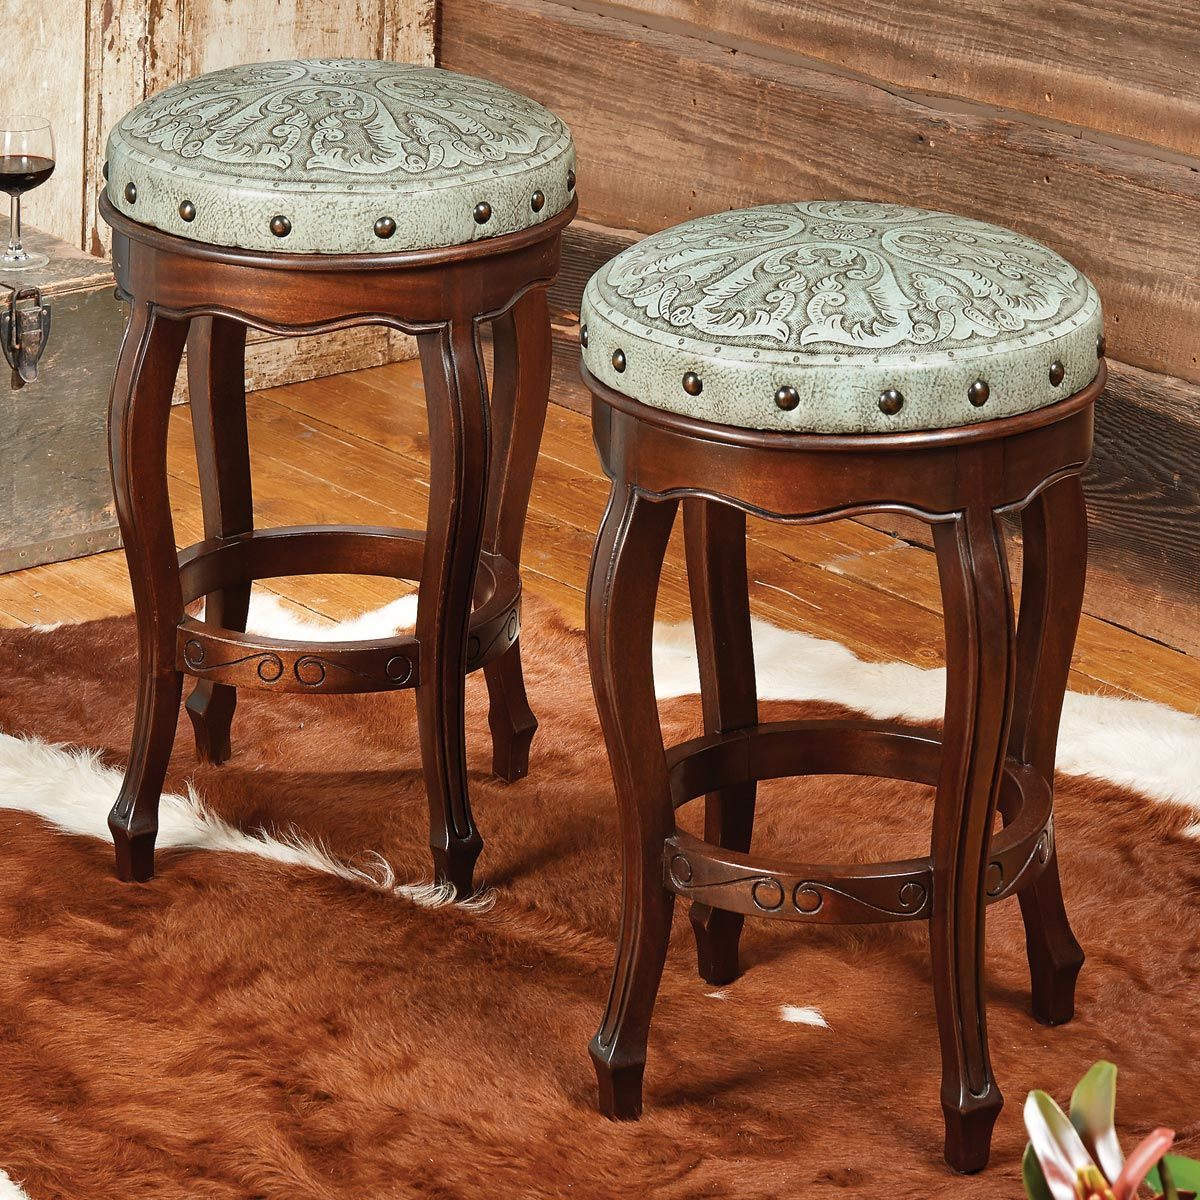 Super Spanish Heritage Turquoise Round Counter Stool Set Of 3 Bralicious Painted Fabric Chair Ideas Braliciousco